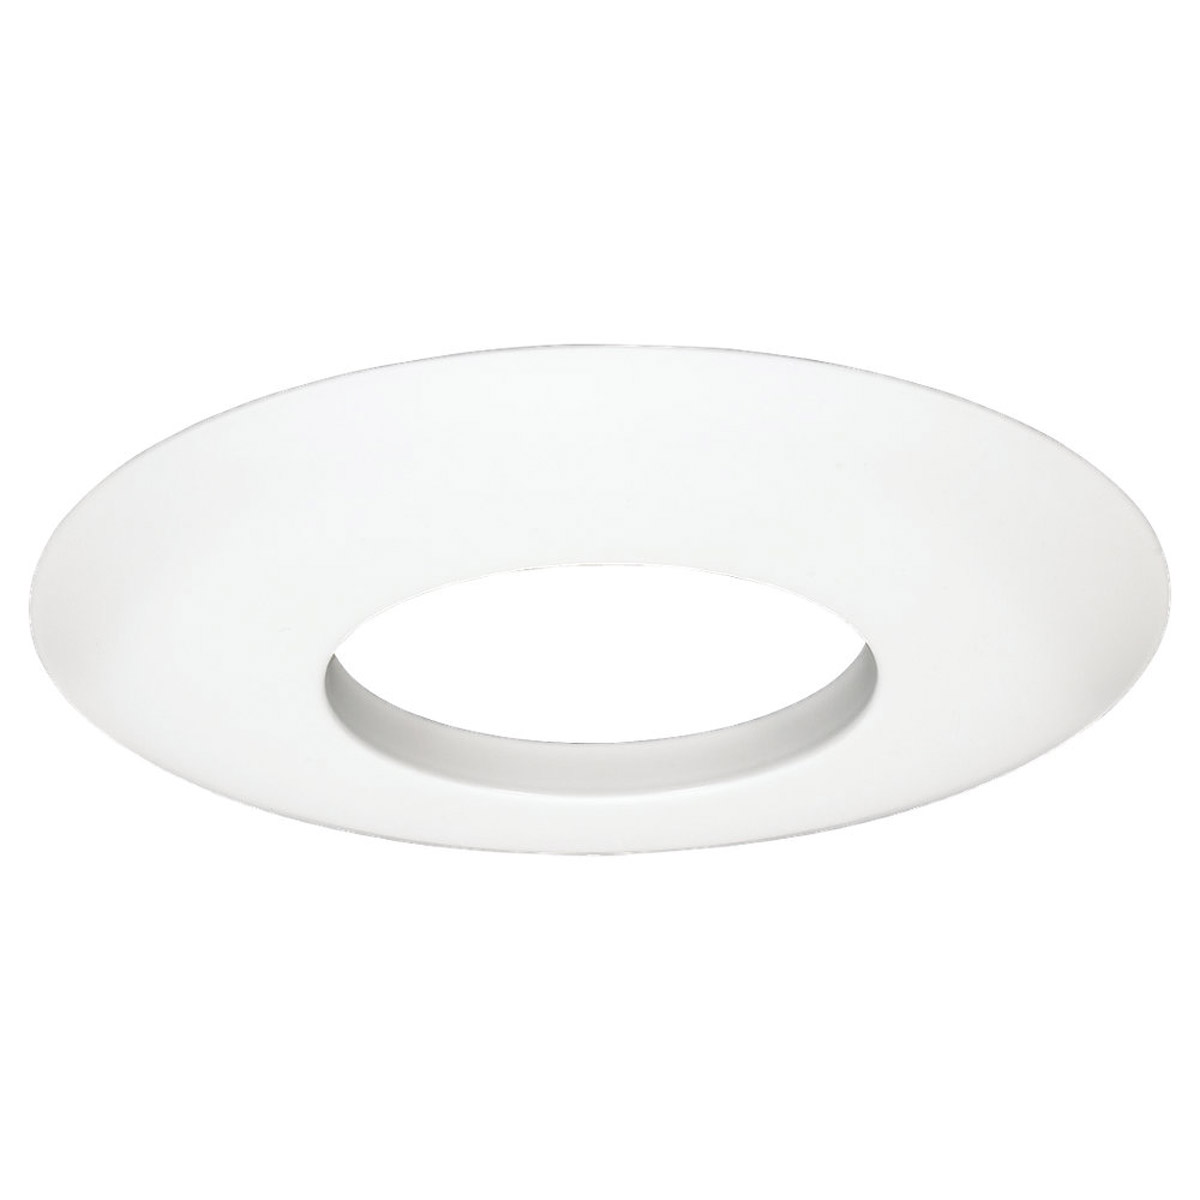 Sea Gull Lighting Signature Recessed Trim Only in White 1120-15 photo